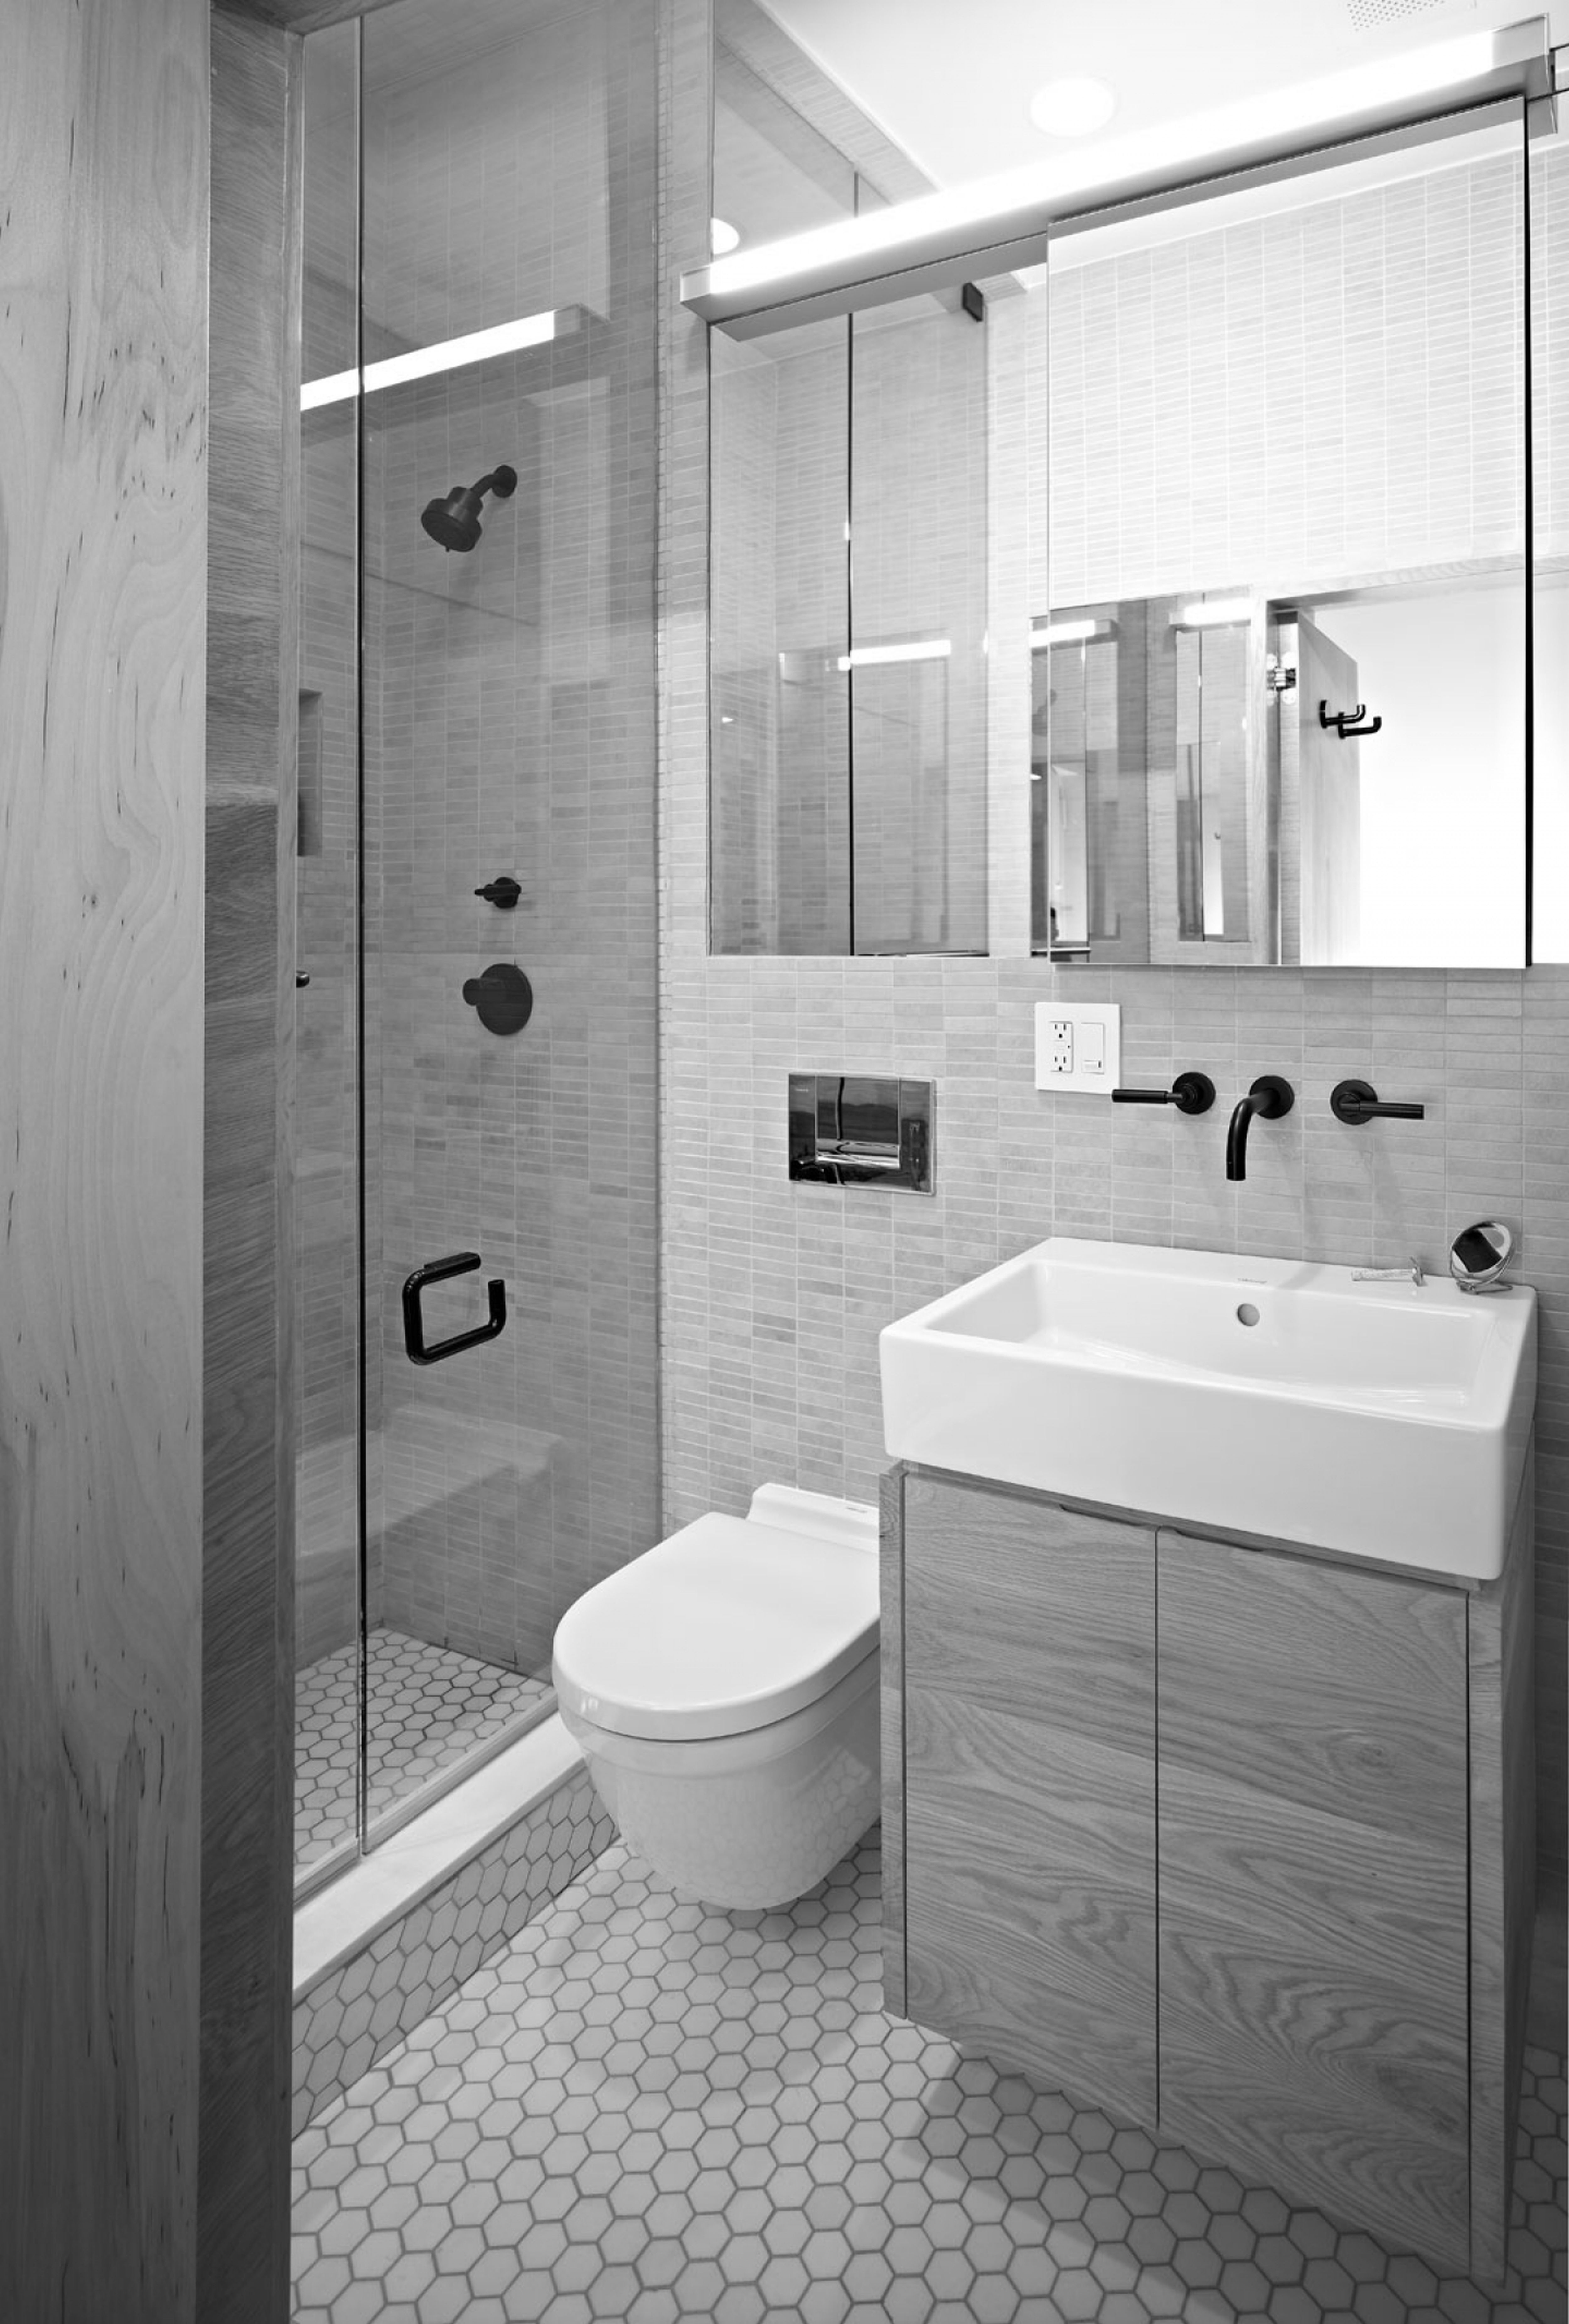 bathroom designs for small spaces modern mad home interior design ideas small spaces bathroom ideas then bathroom PVOSNMO